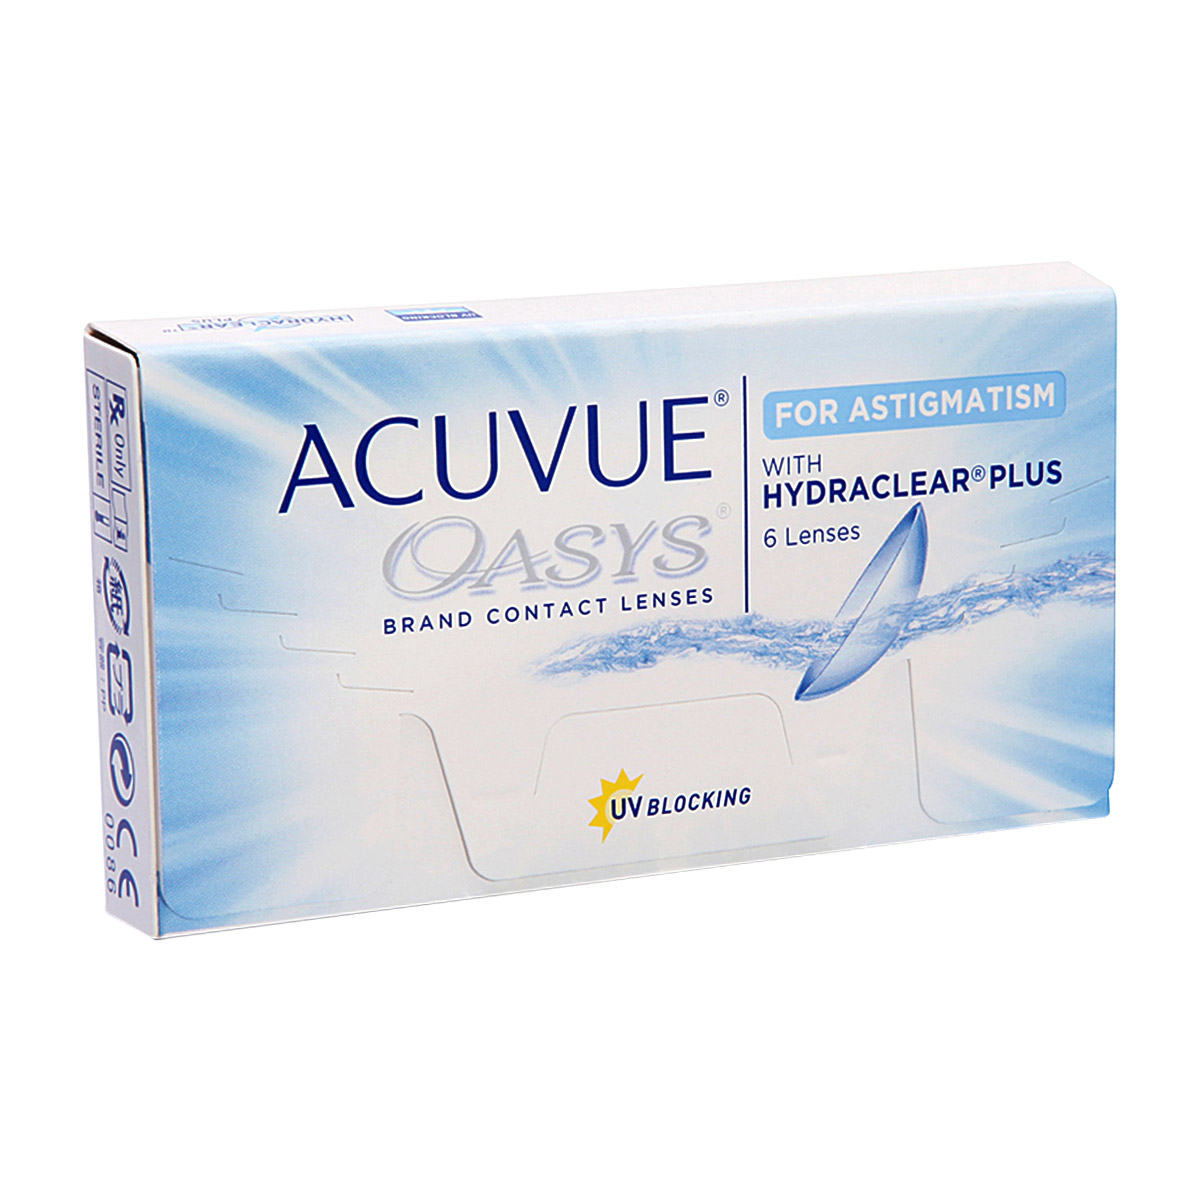 Contact lenses Acuvue Oasys for Astigmatism (6 lenses)